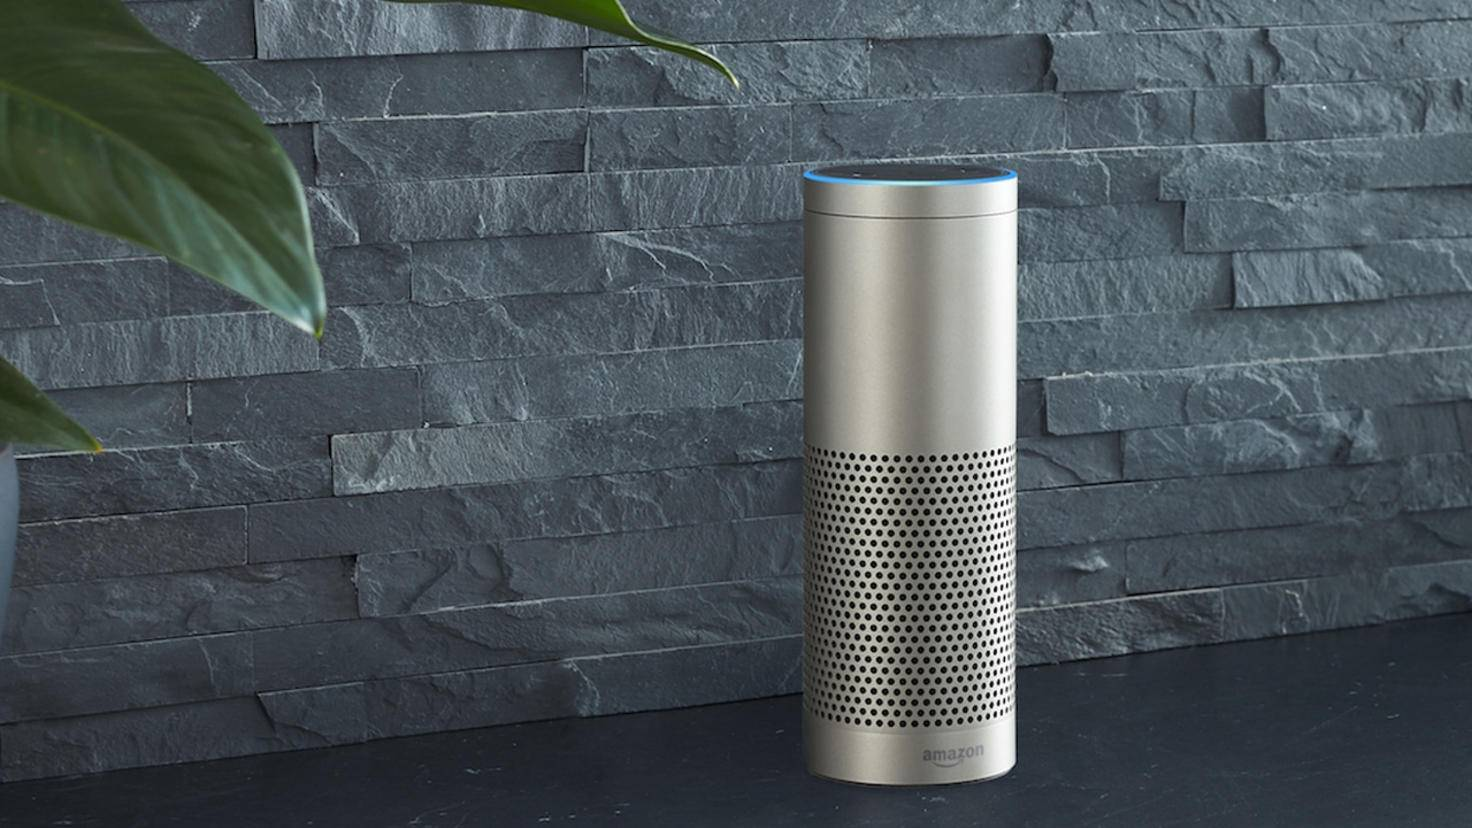 Amazon Echo Plus 2